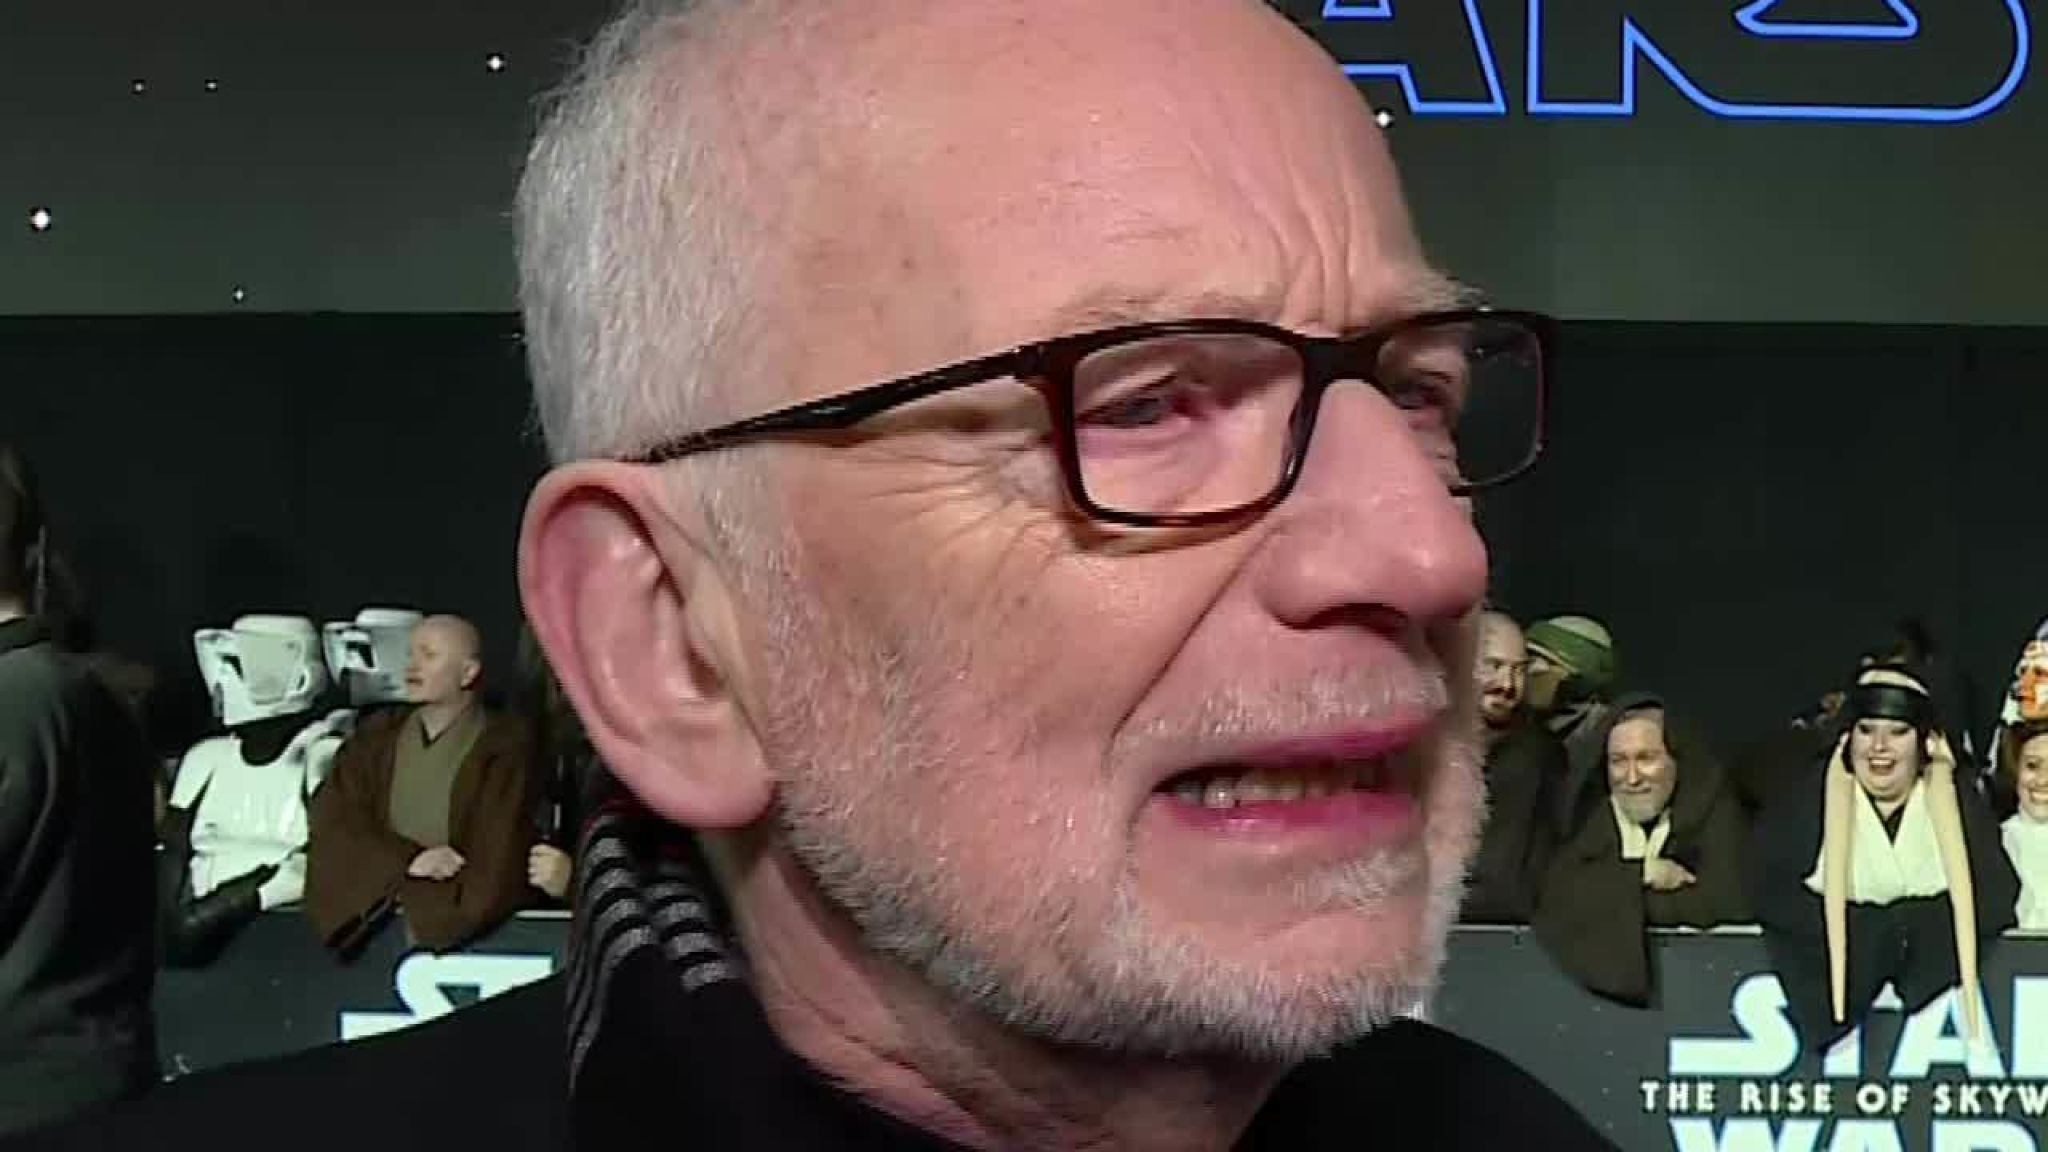 Stars 'geek out' over StarWars